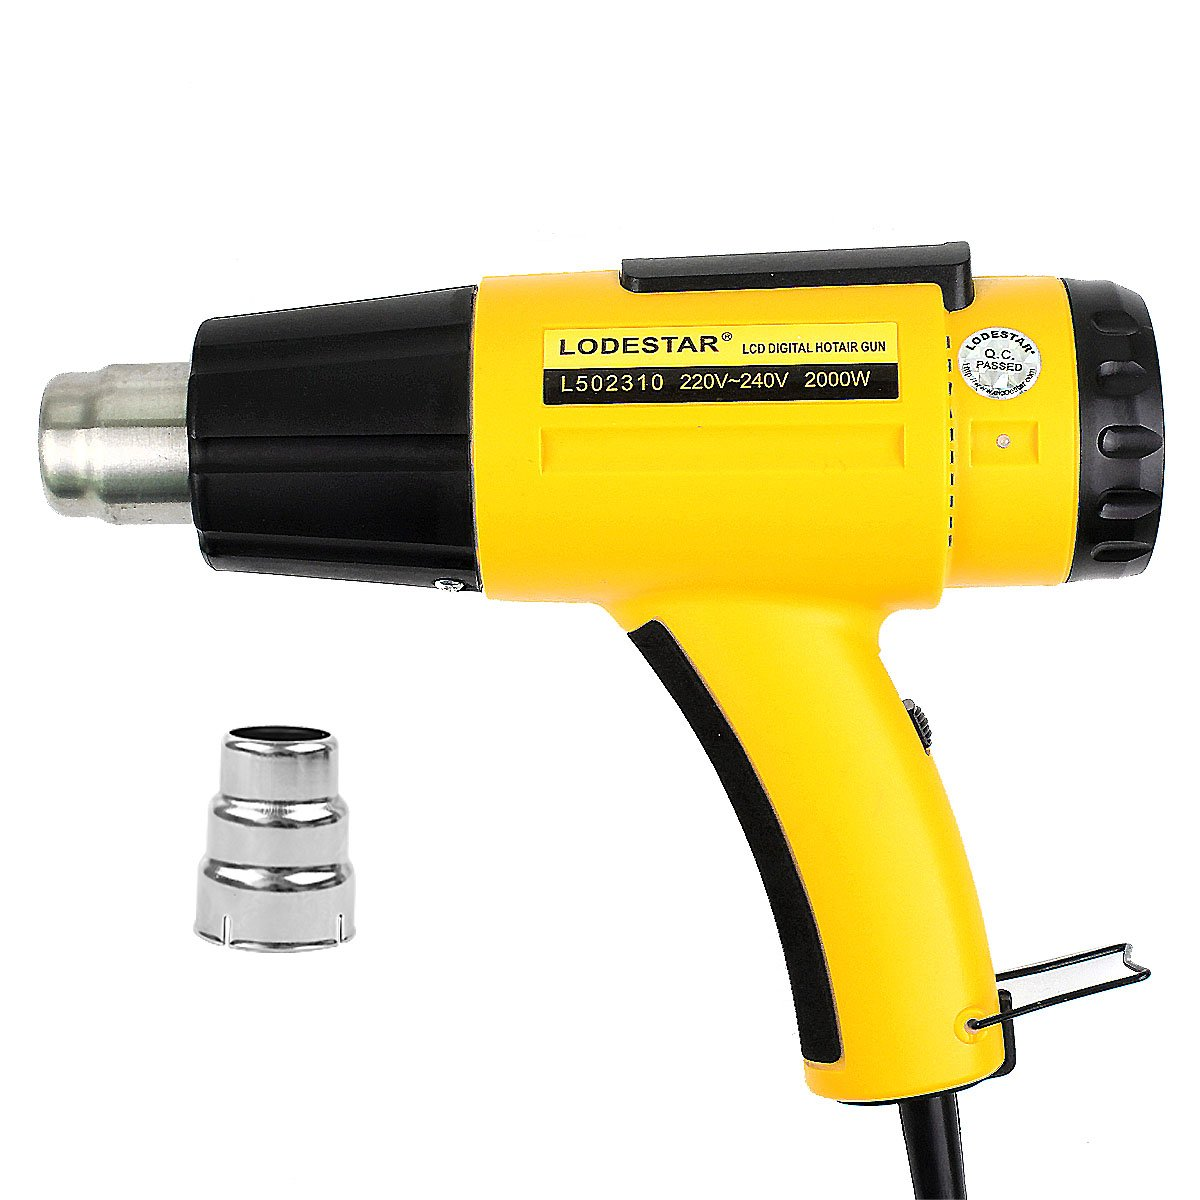 LED Digital Hot Air Gun - Esste 2000W Heat Gun 110V Voltage Adjustable Temperature And Wind Power Suitable for a variety of working range